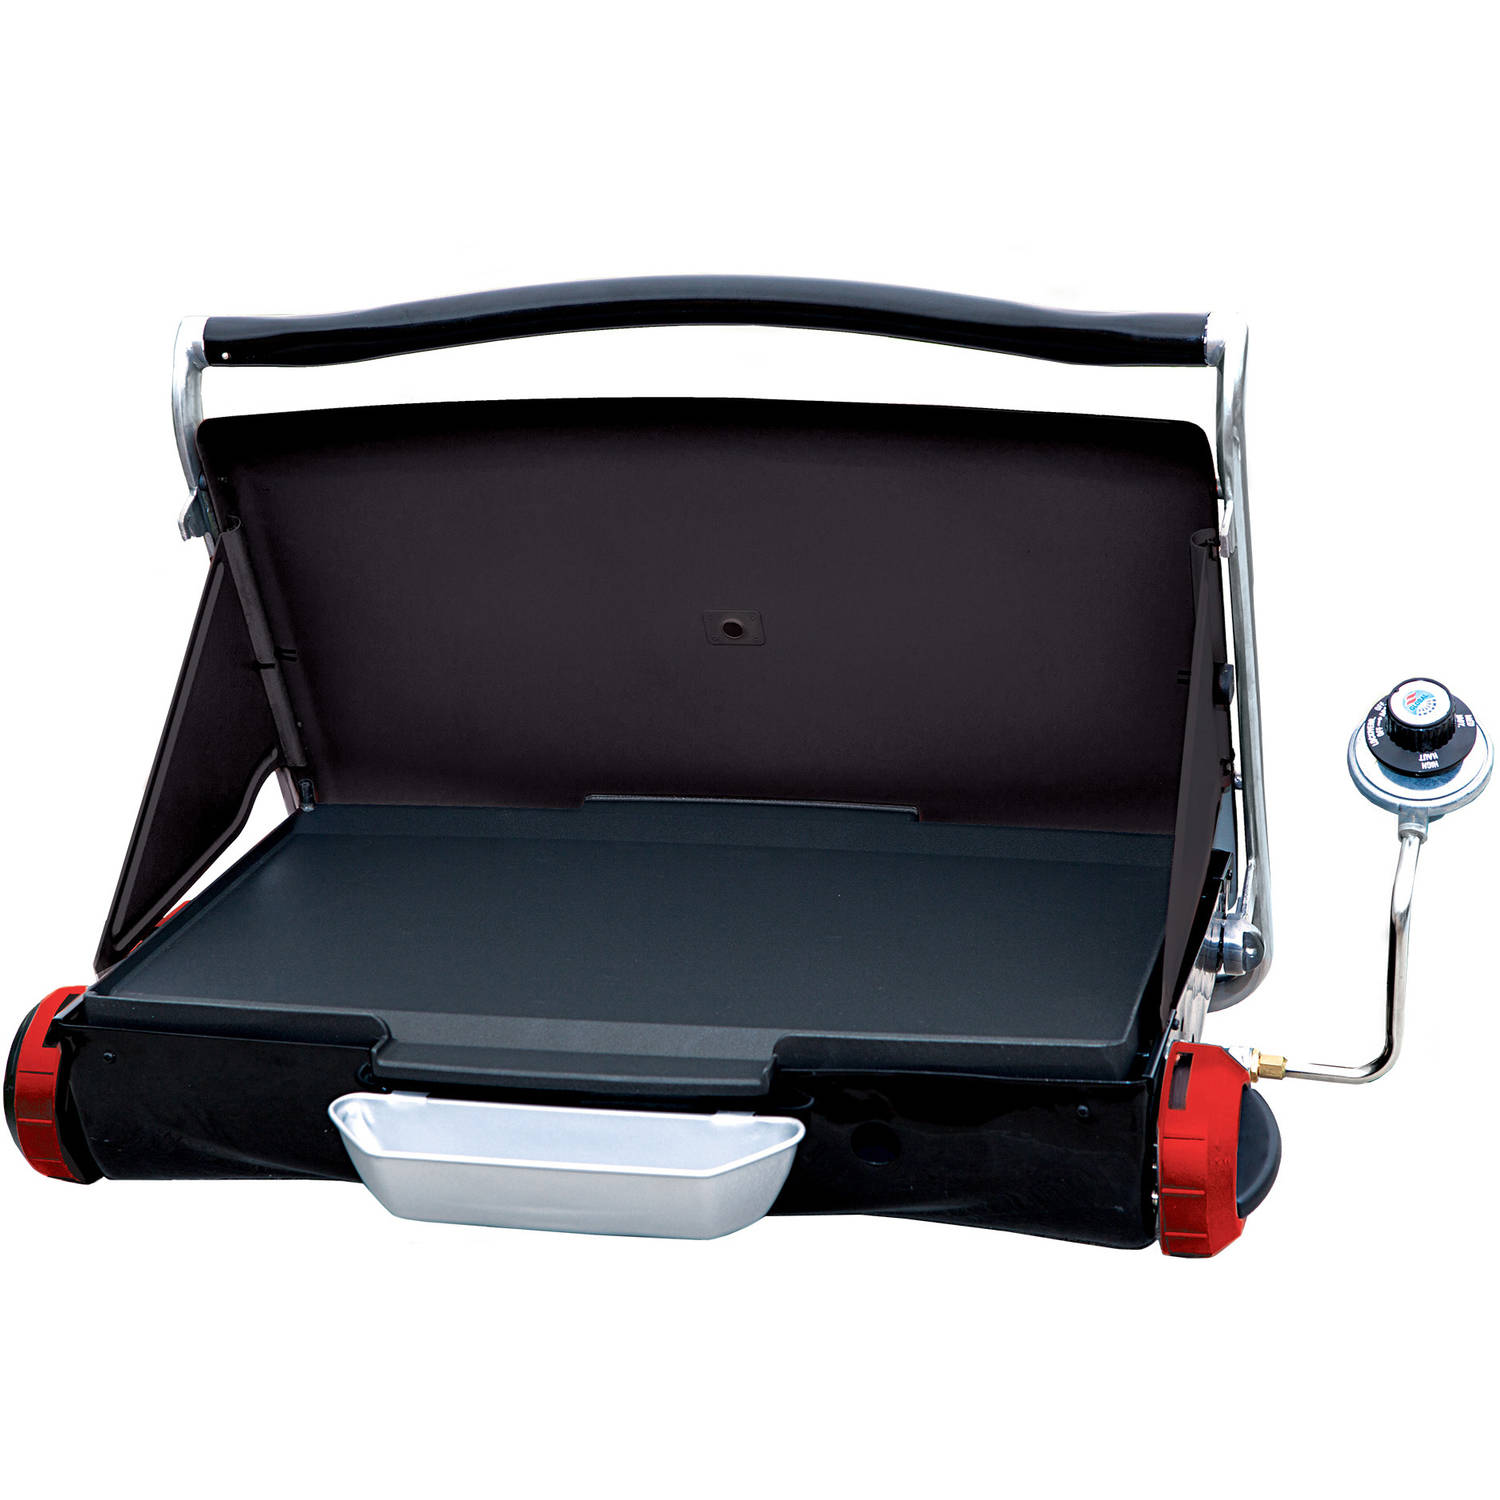 George Foreman Camp and Tailgate Portable Propane Grill, GP200R by Spectrum Brands